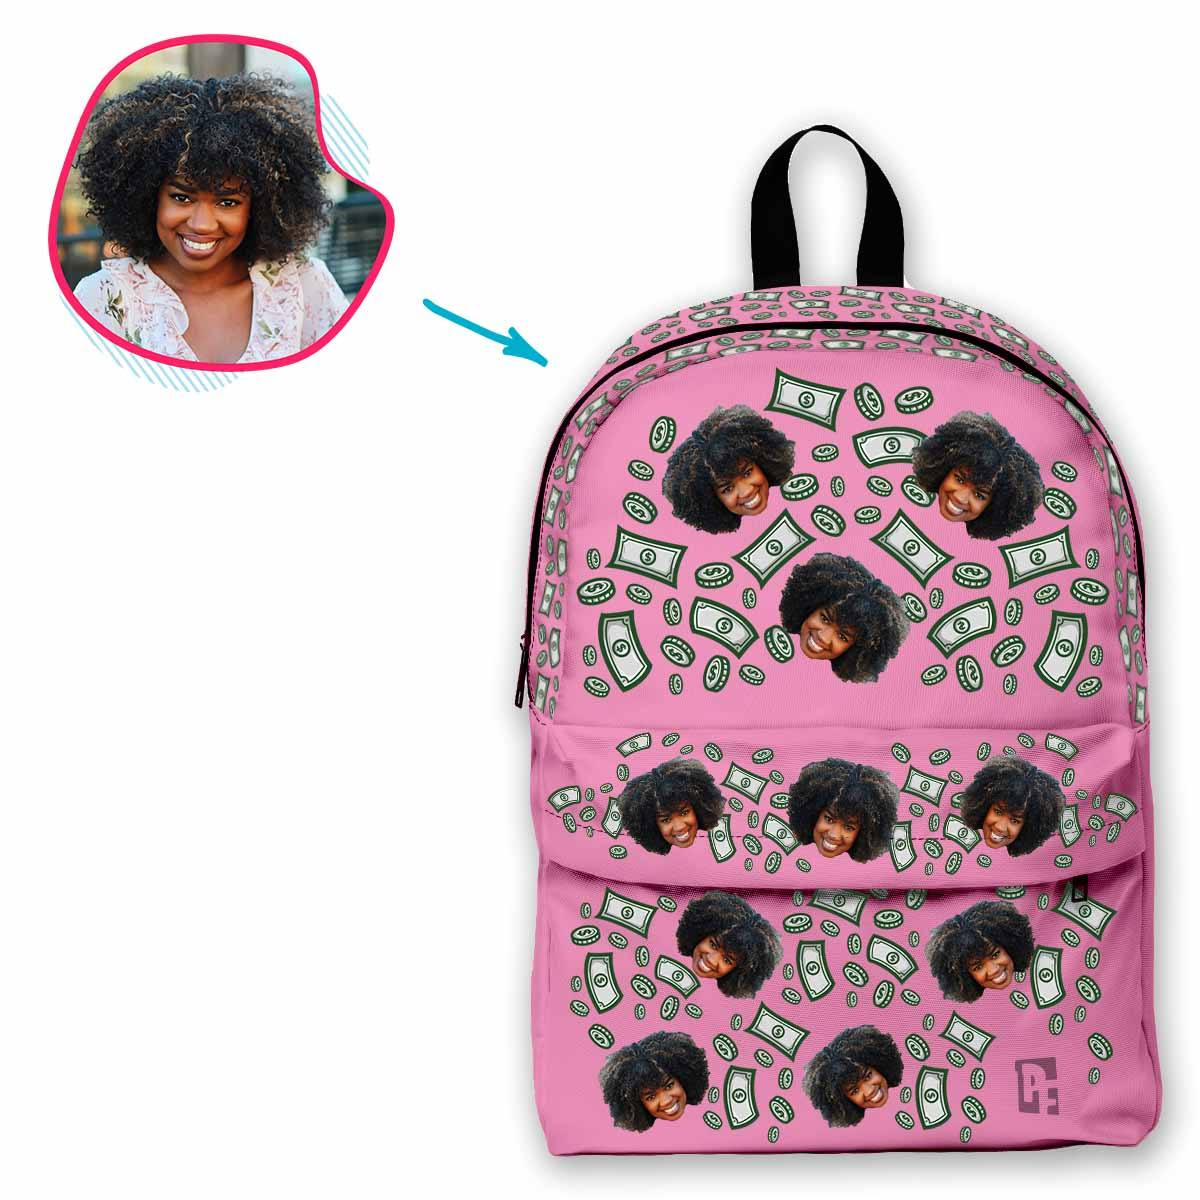 pink Money classic backpack personalized with photo of face printed on it